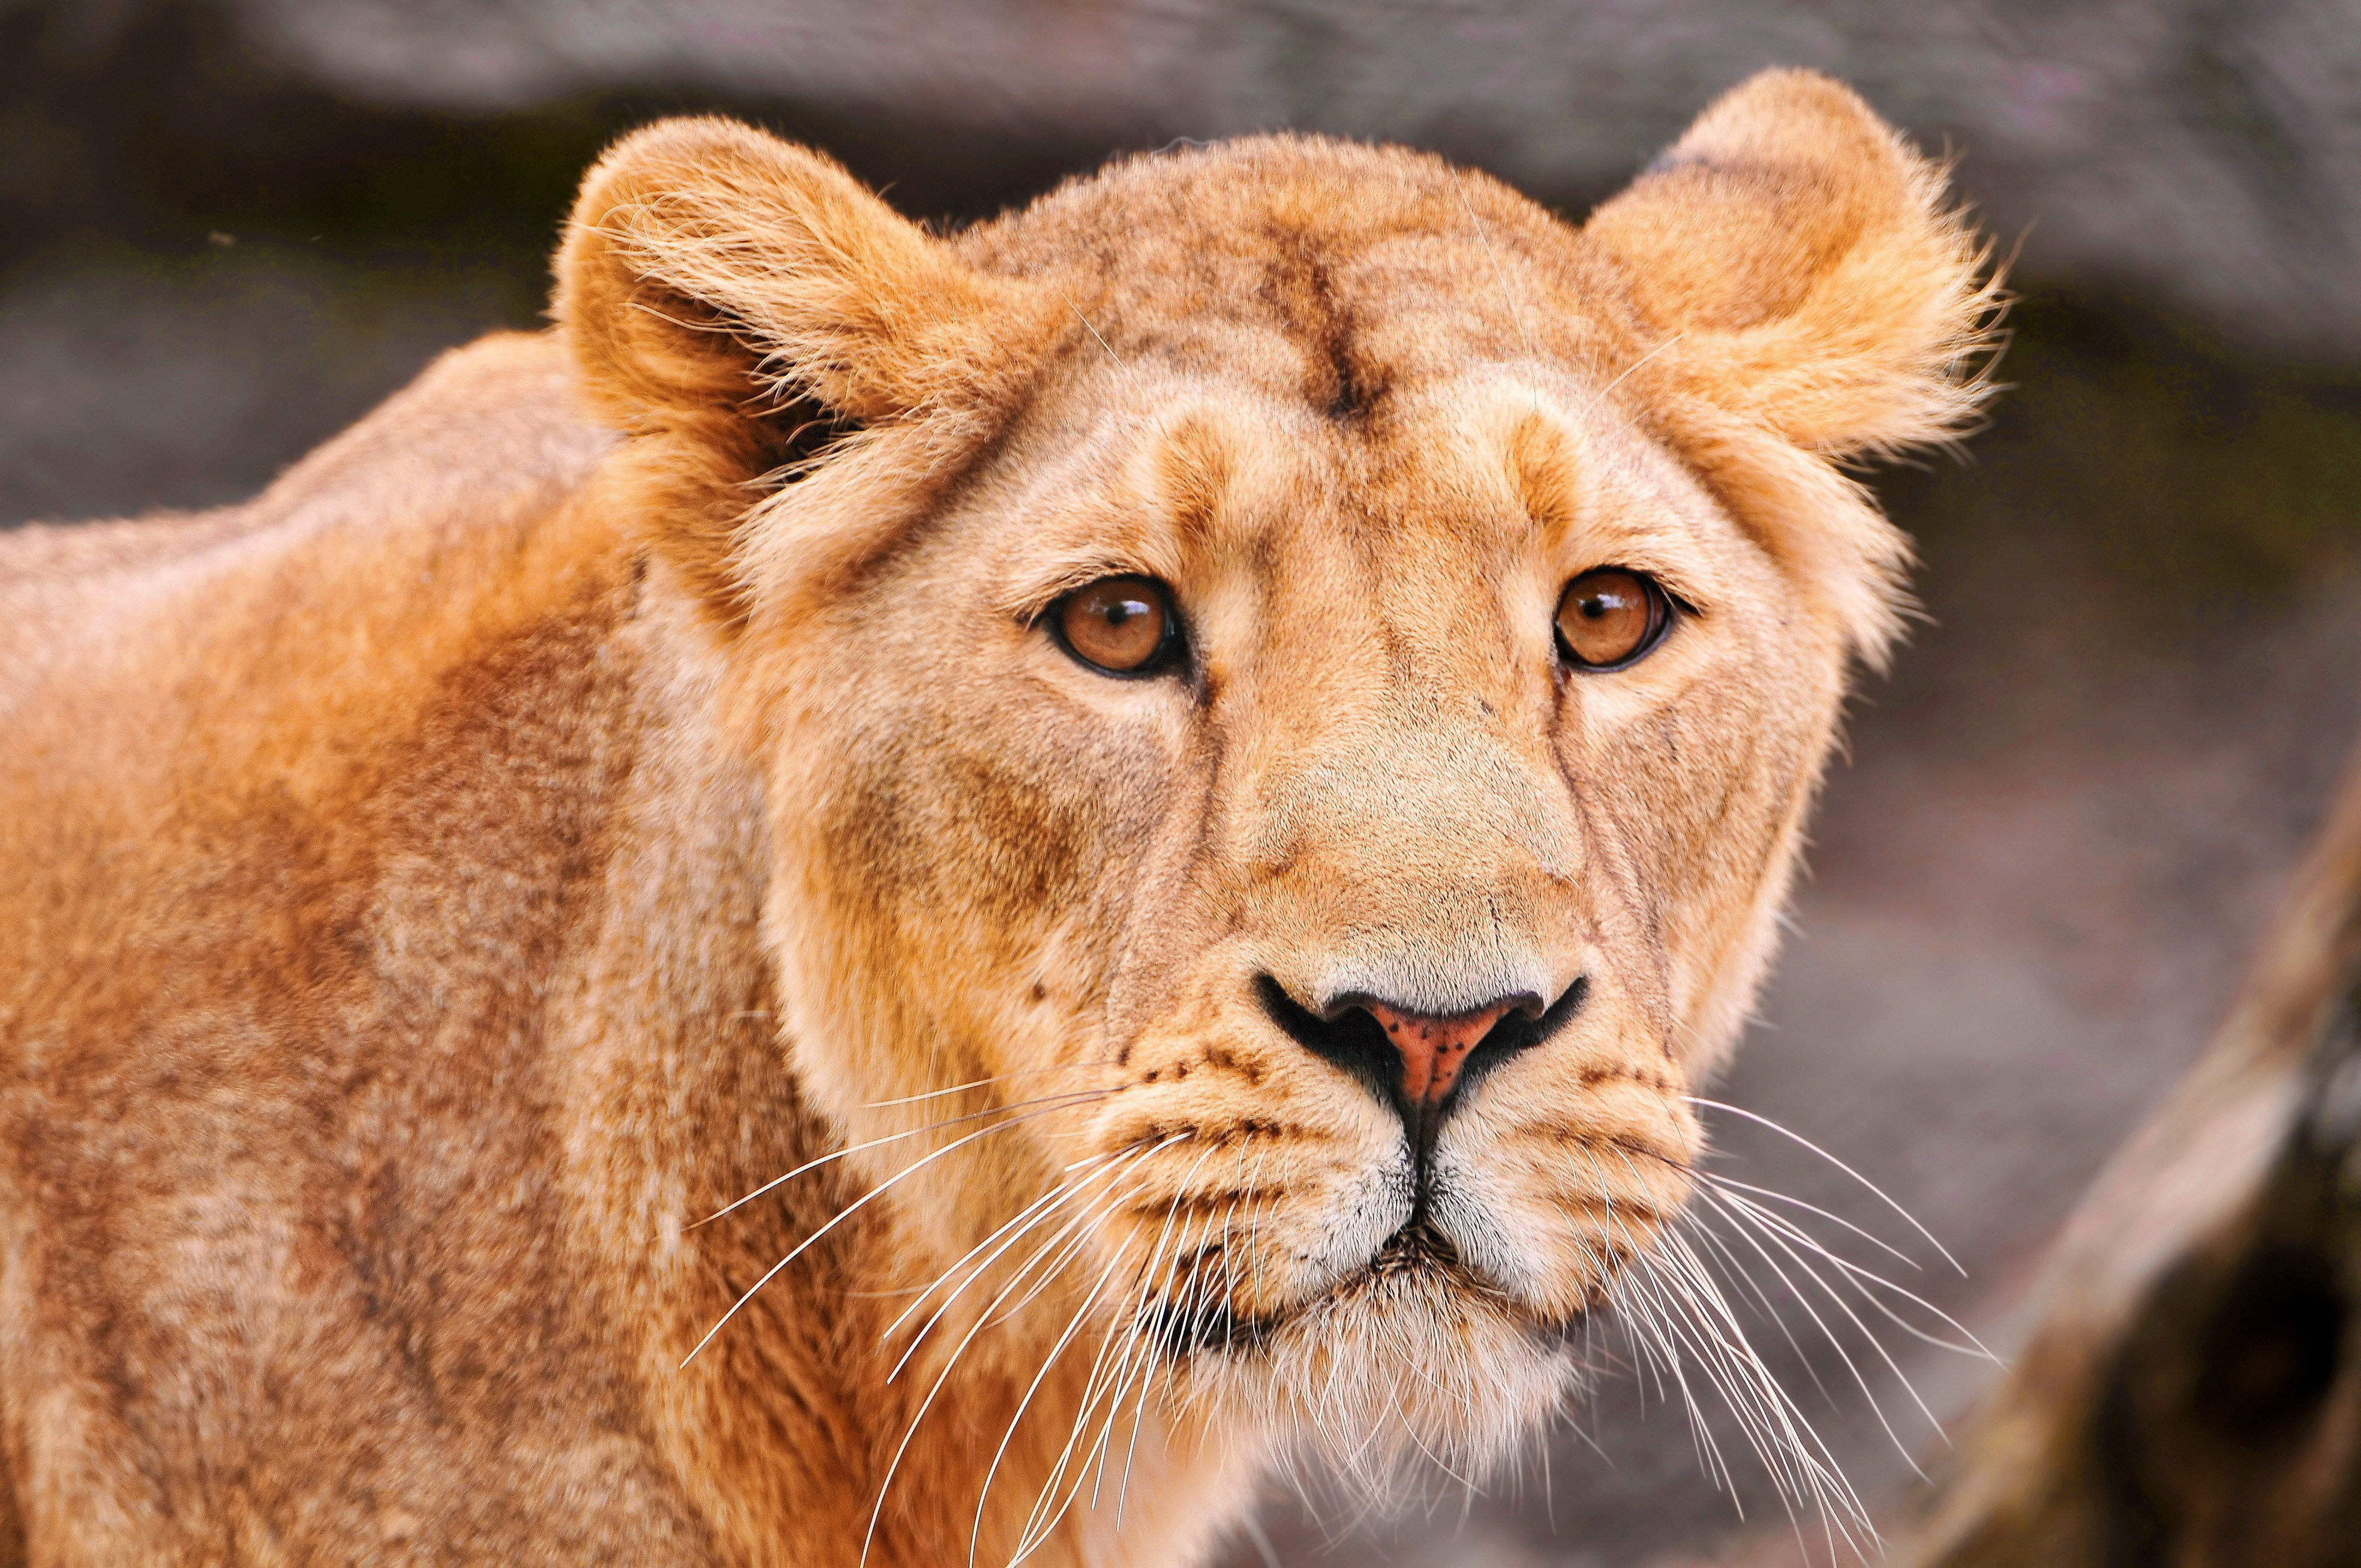 Cool Lion Wallpapers Hd Lion 4k Ultra Hd Wallpaper Background Image 3936x2614